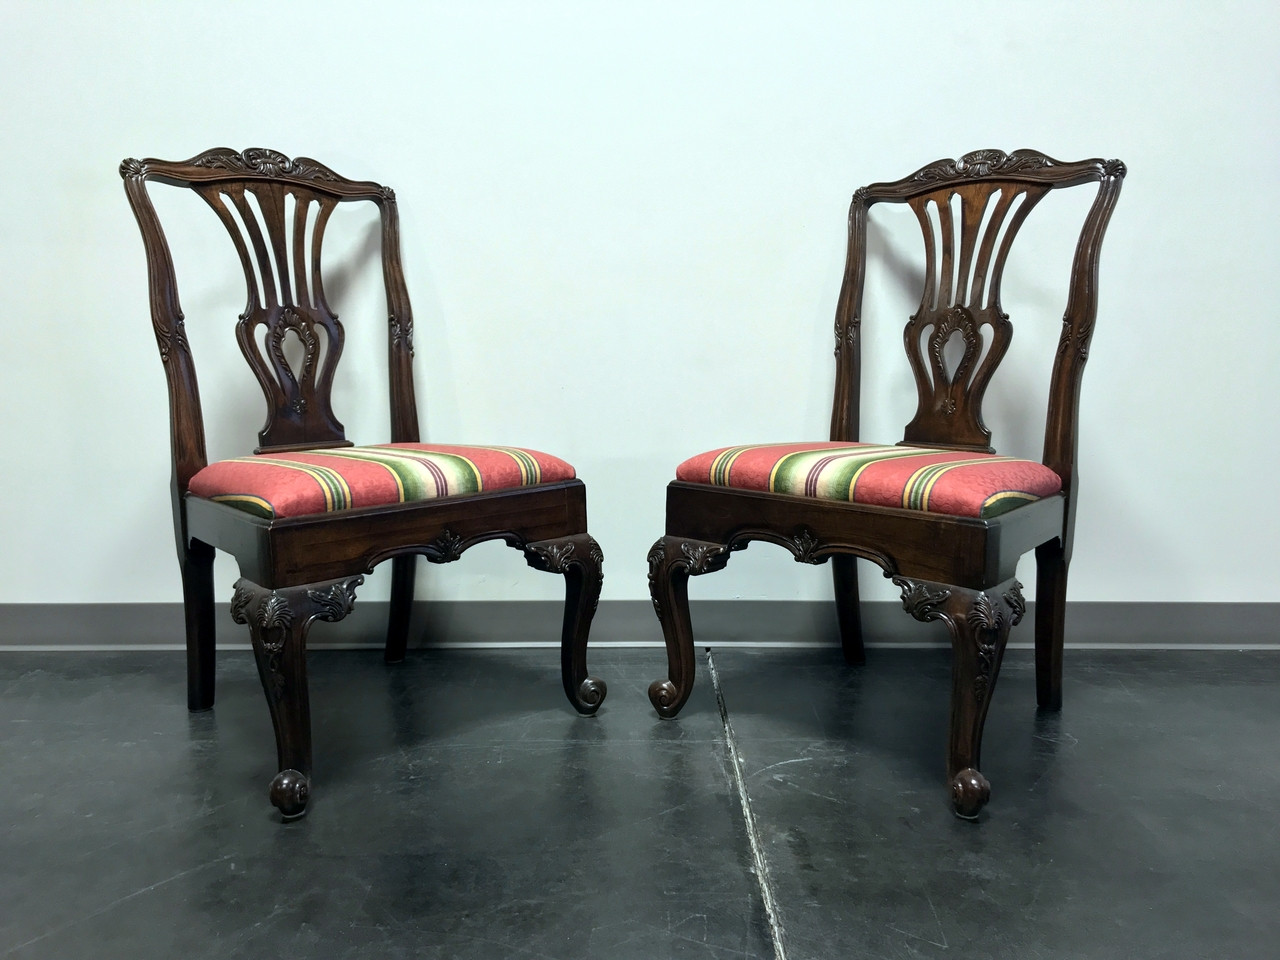 HEKMAN Marsala Oak French Country Dining Side Chairs Pair 2